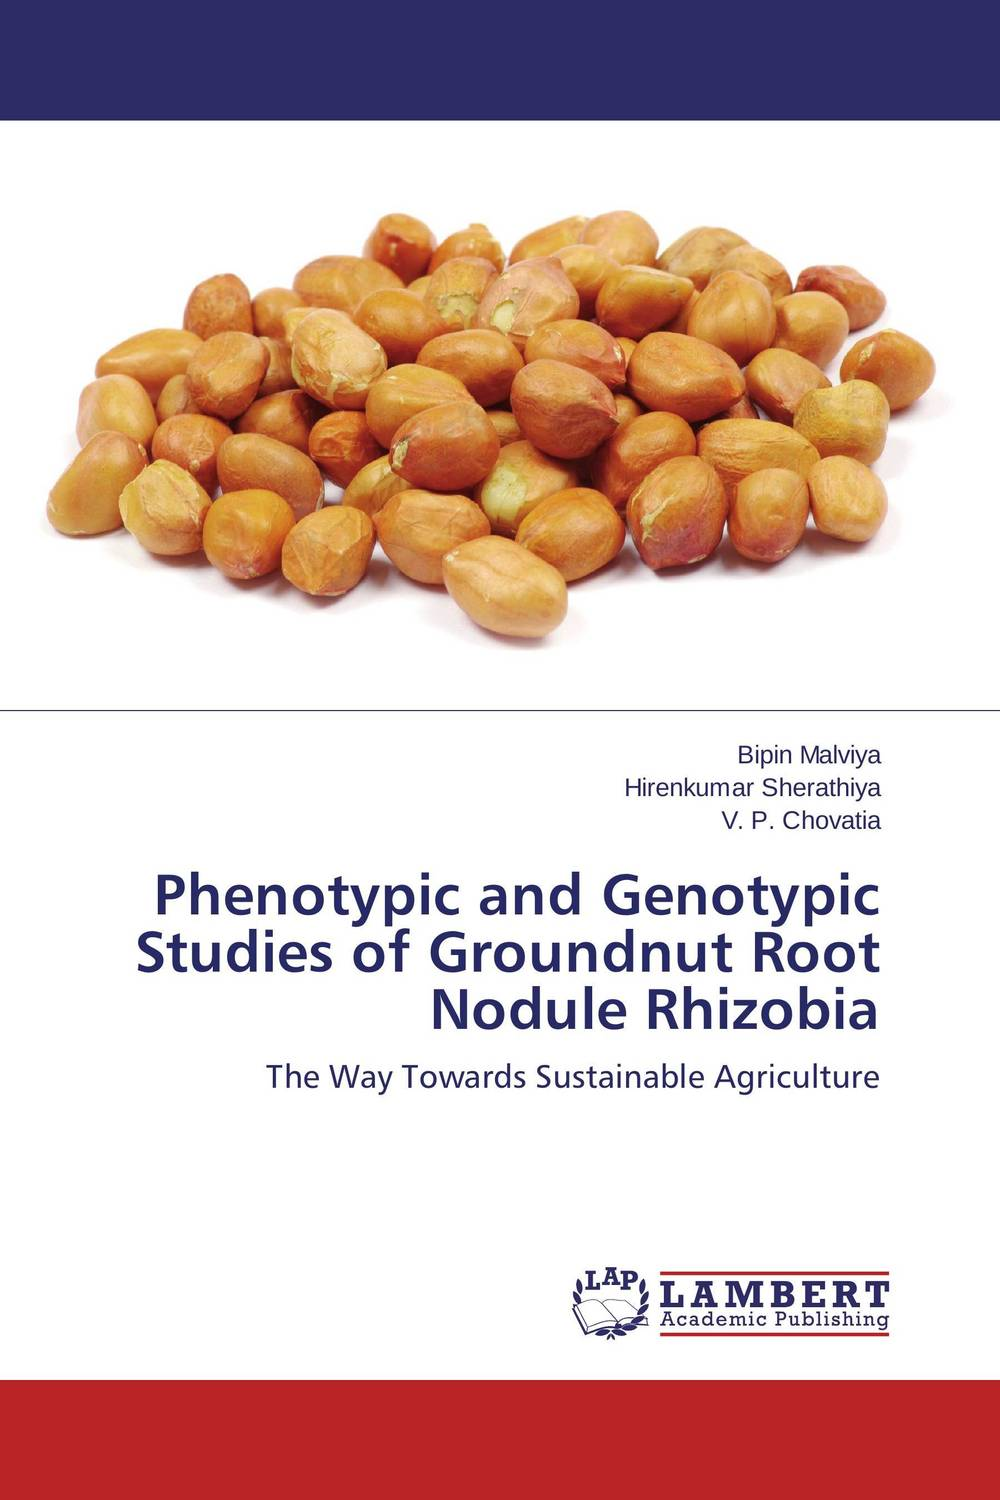 Phenotypic and Genotypic Studies of Groundnut Root Nodule Rhizobia the teeth with root canal students to practice root canal preparation and filling actually